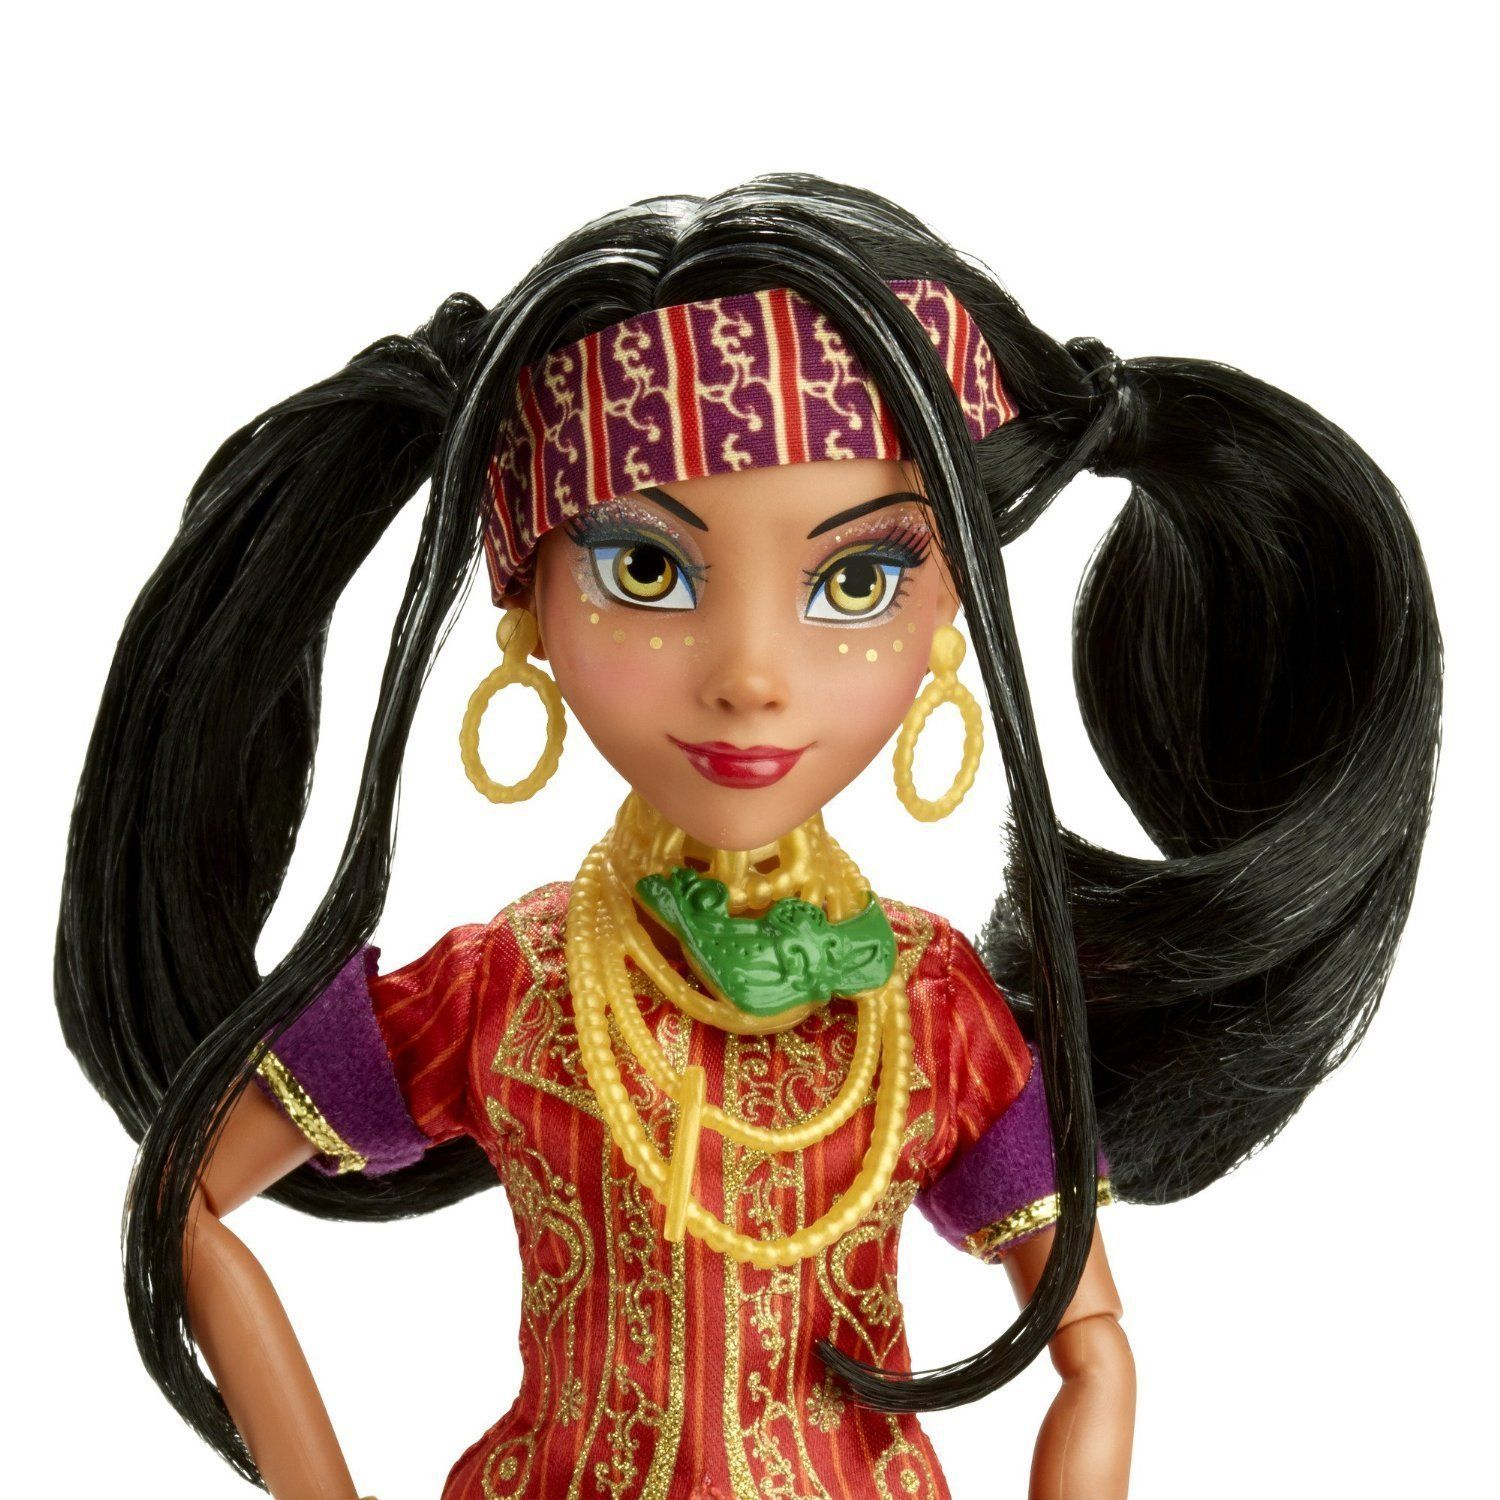 Image 4 of Disney Descendants Villain Genie Chic Freddie IE Doll Isle of the Lost